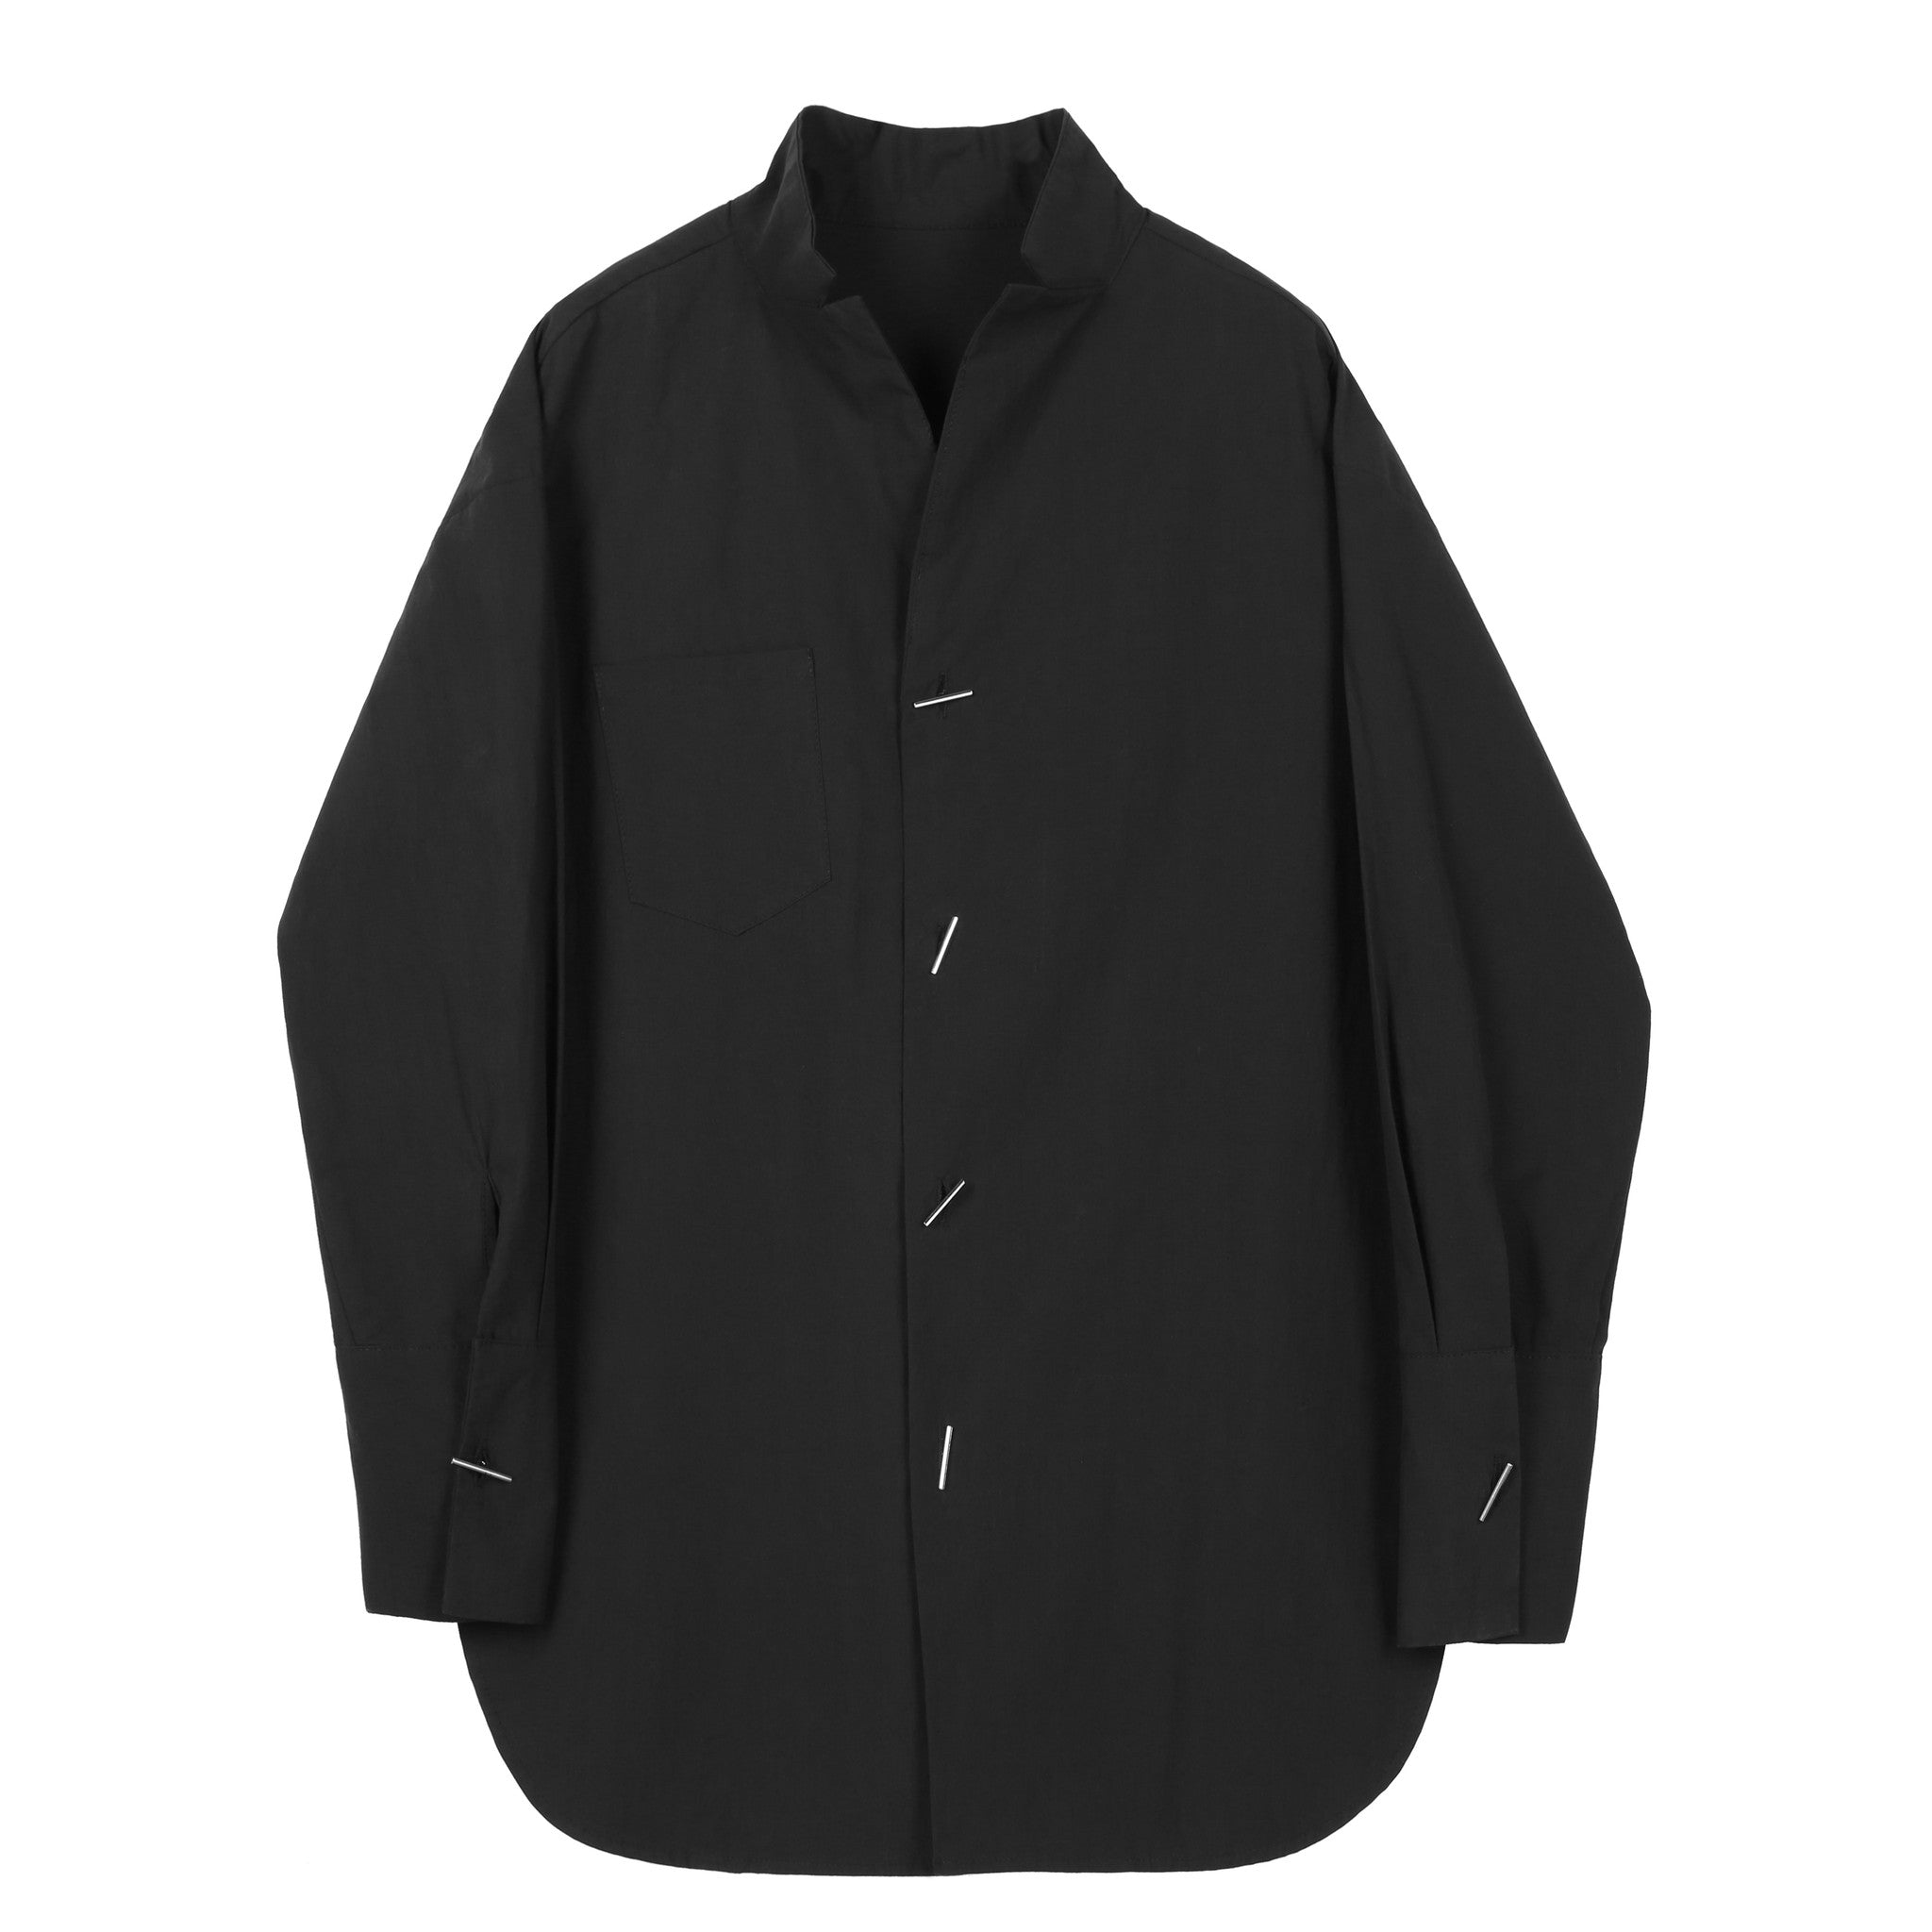 Black Mandarin Collar Shirt - Indigo